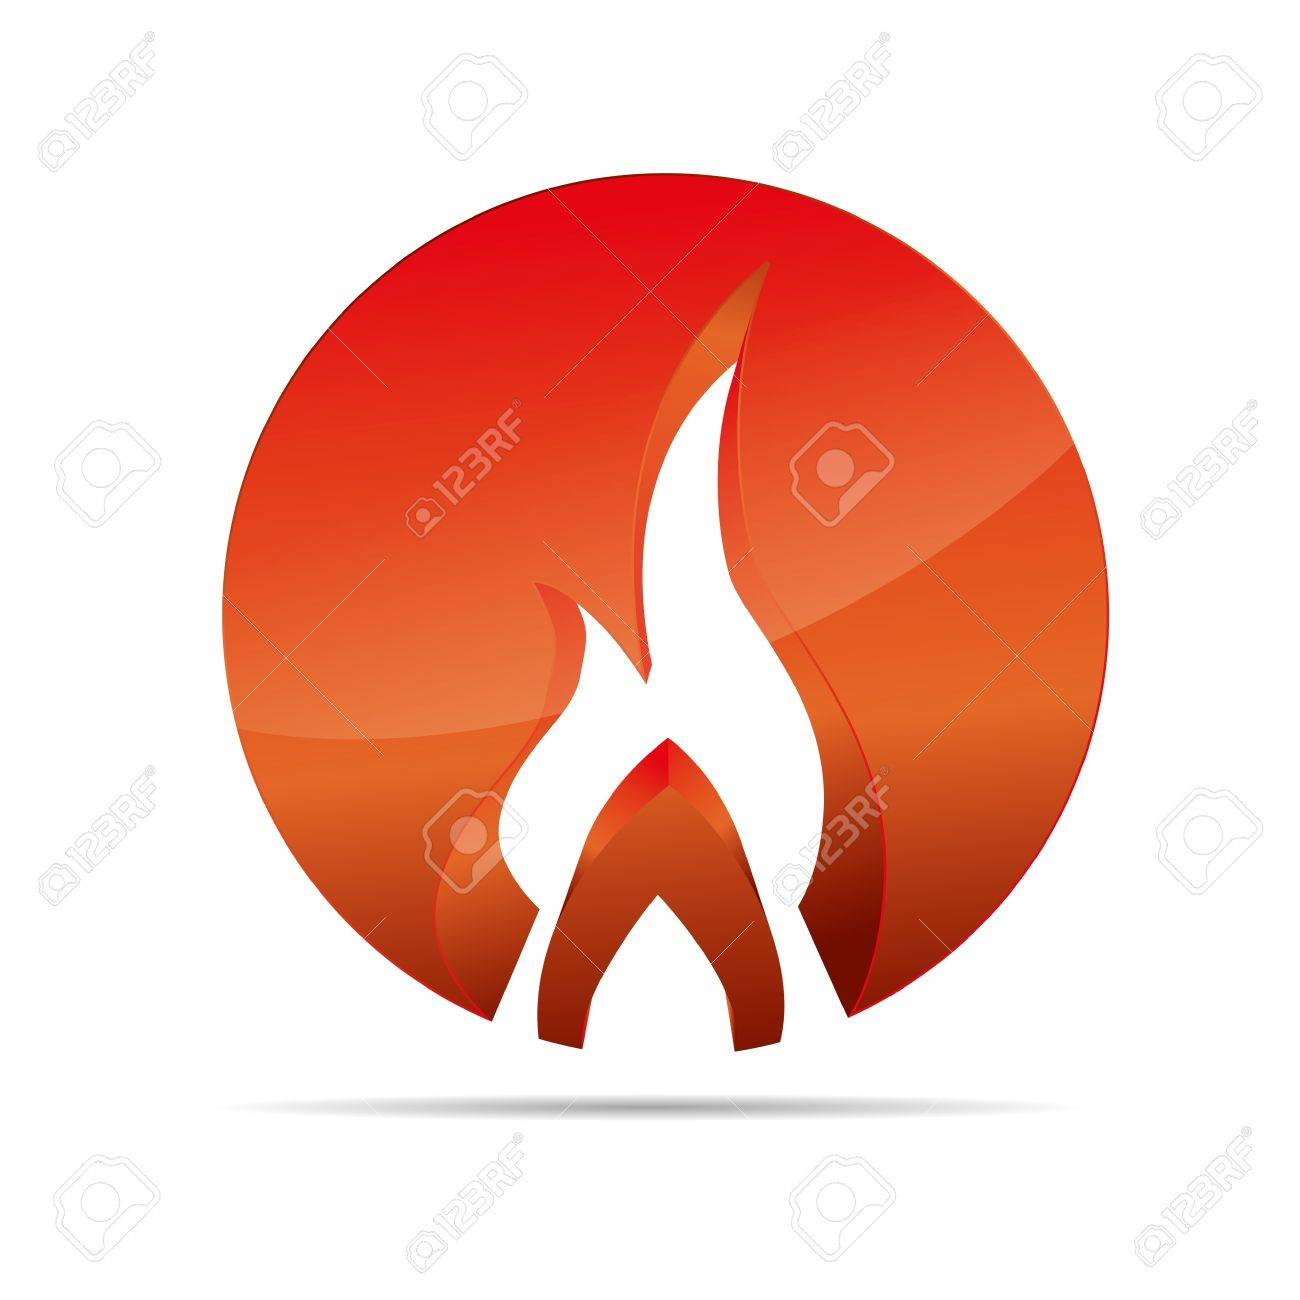 3D abstraction fire flame broil globe circular corporate logo design icon sign business Stock Vector - 15764231